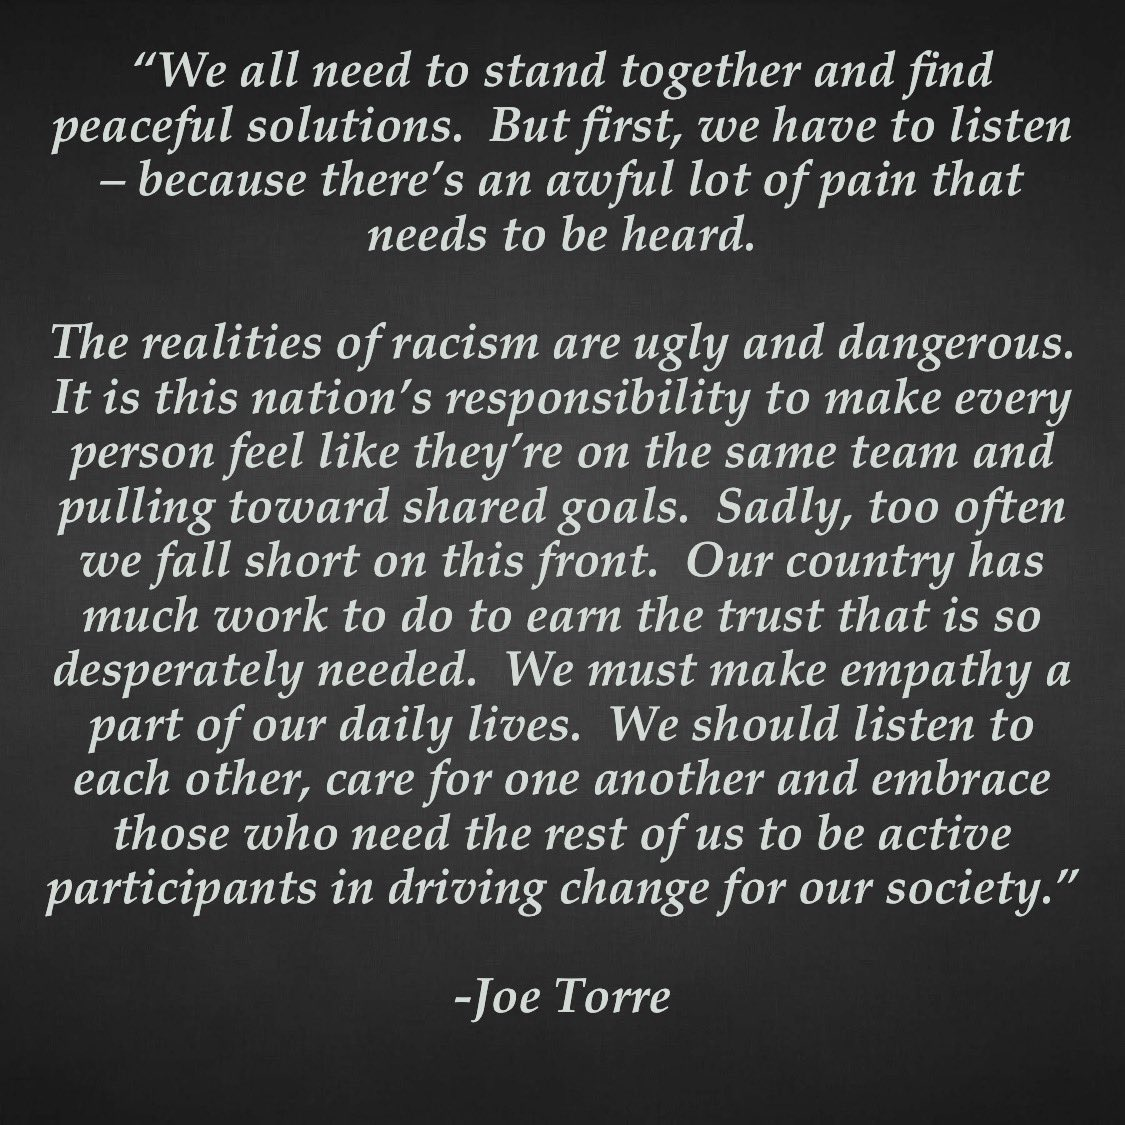 Joe Torre (@JoeTorre) on Twitter photo 2020-06-04 20:58:30